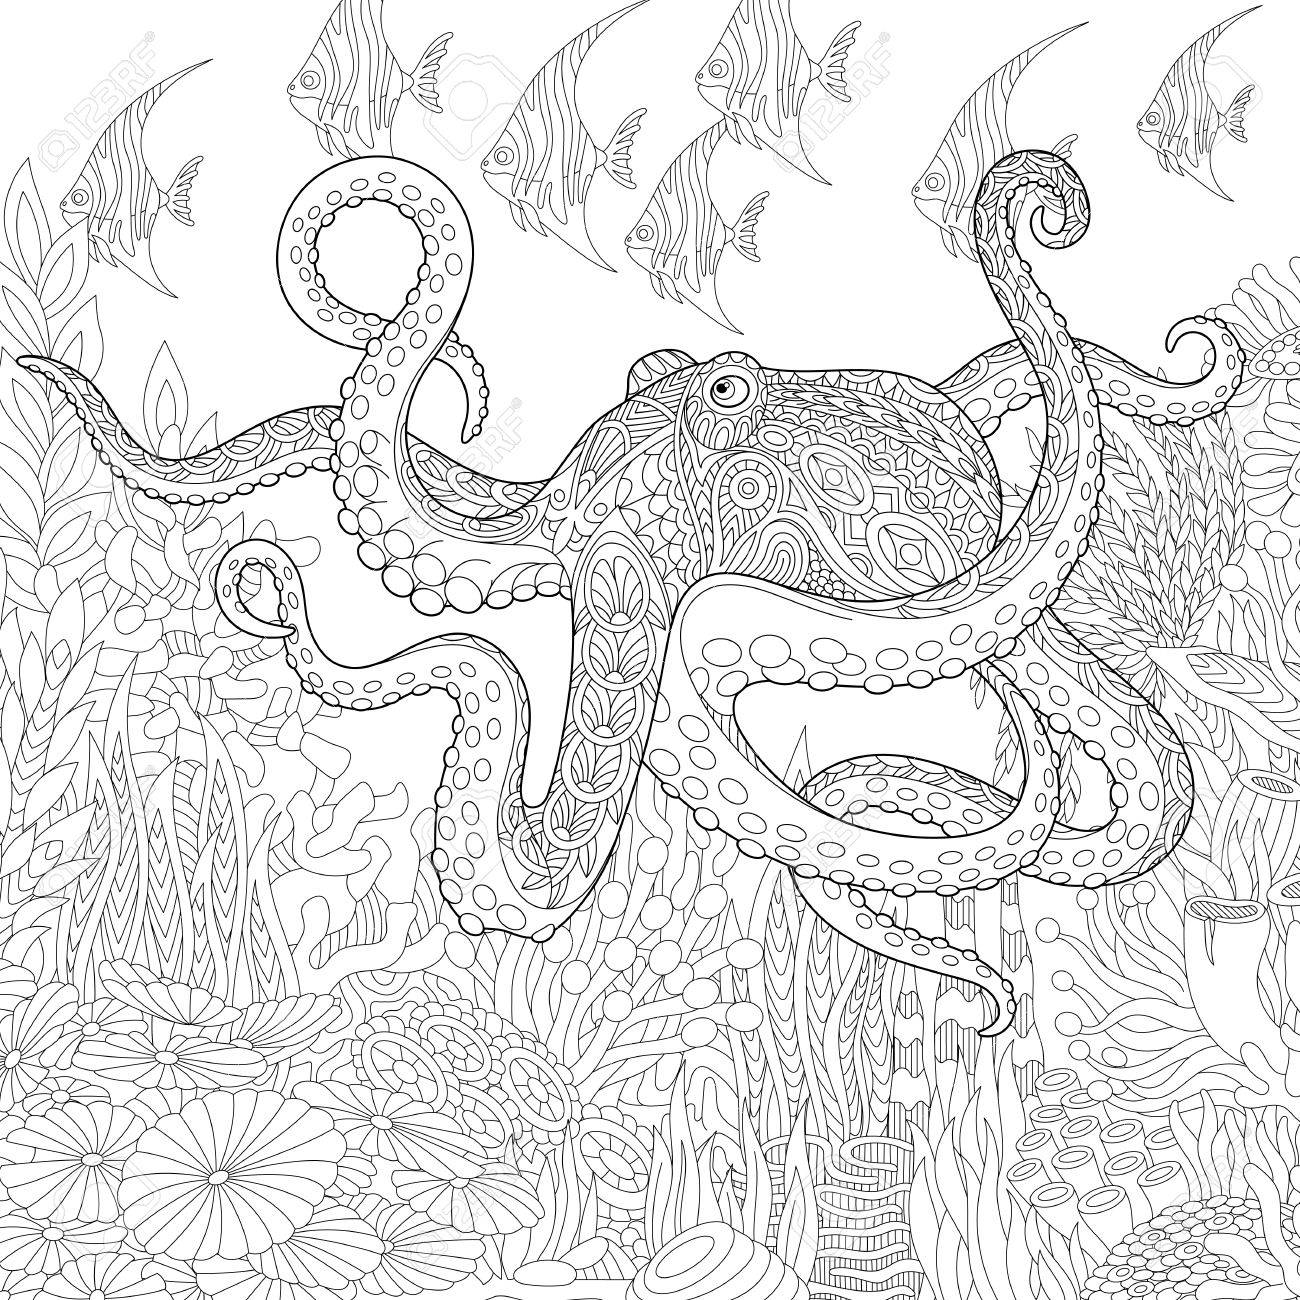 Stylized Composition Of Giant Octopus Tropical Fish Underwater Seaweed And Corals Freehand Sketch